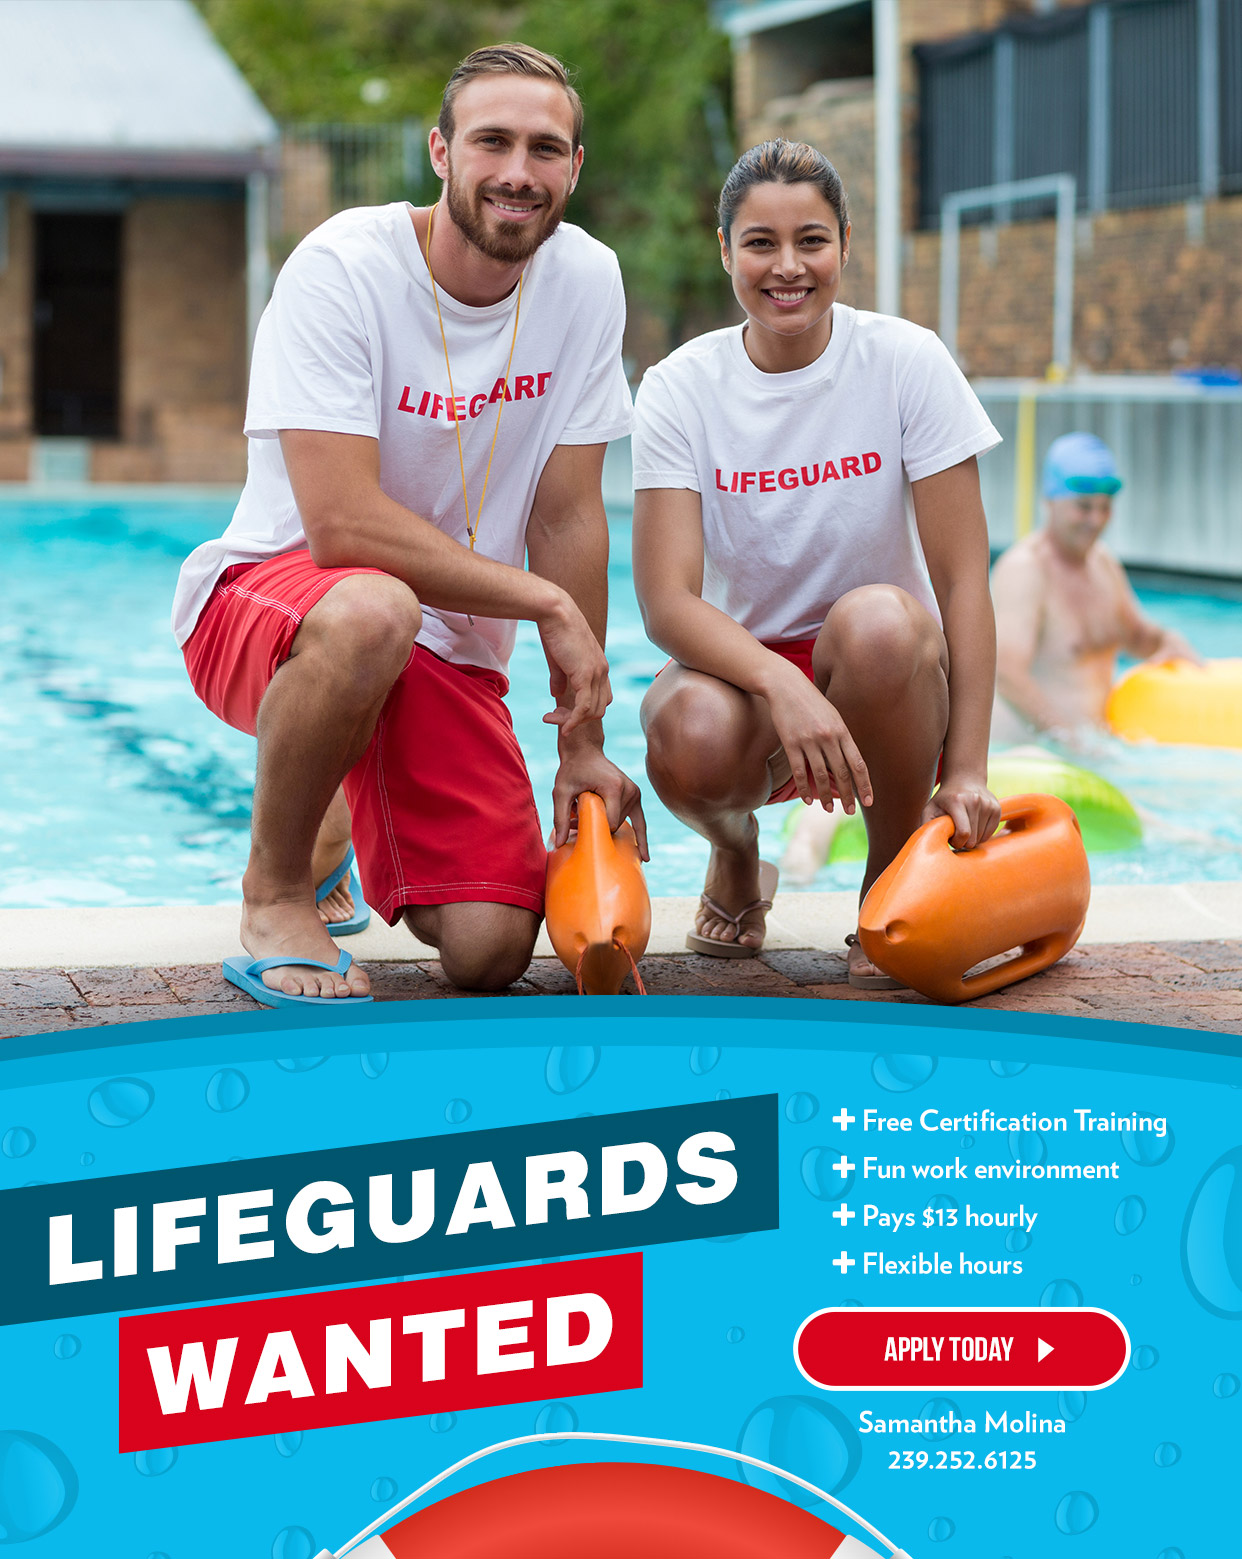 Lifeguards Wanted 1 mobile